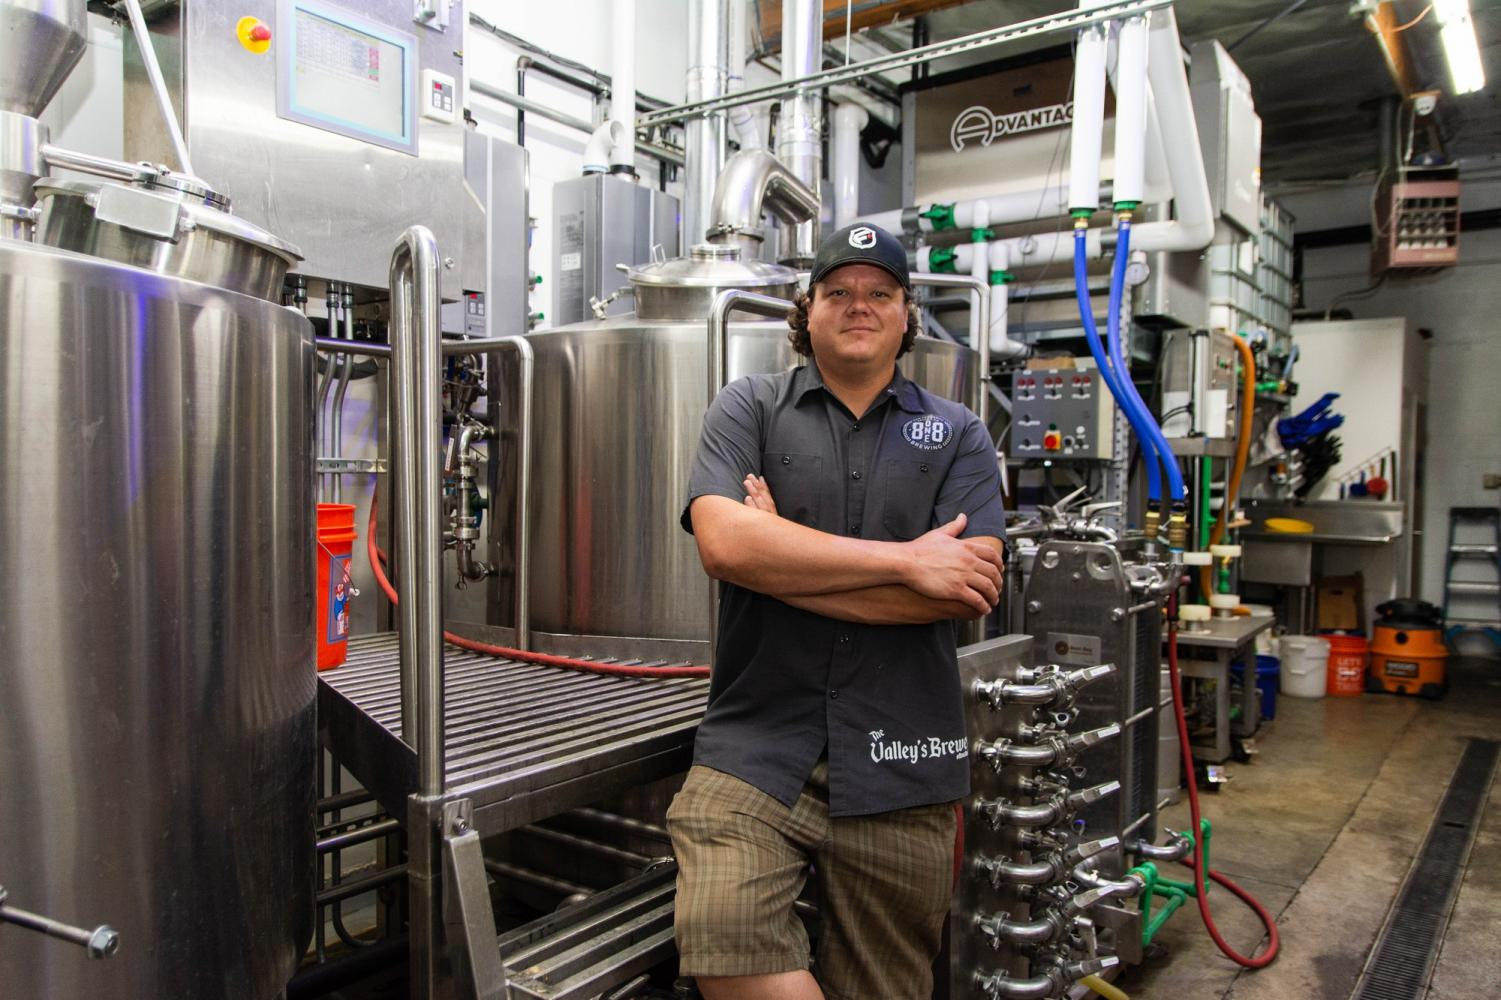 Some of the finest inventions have been created in garages, including Derrick Olson's first batch of beer in his hometown of Sylmar which gave birth to 8one8 Brewing for locals to enjoy. Photo credit: Joshua Pacheco